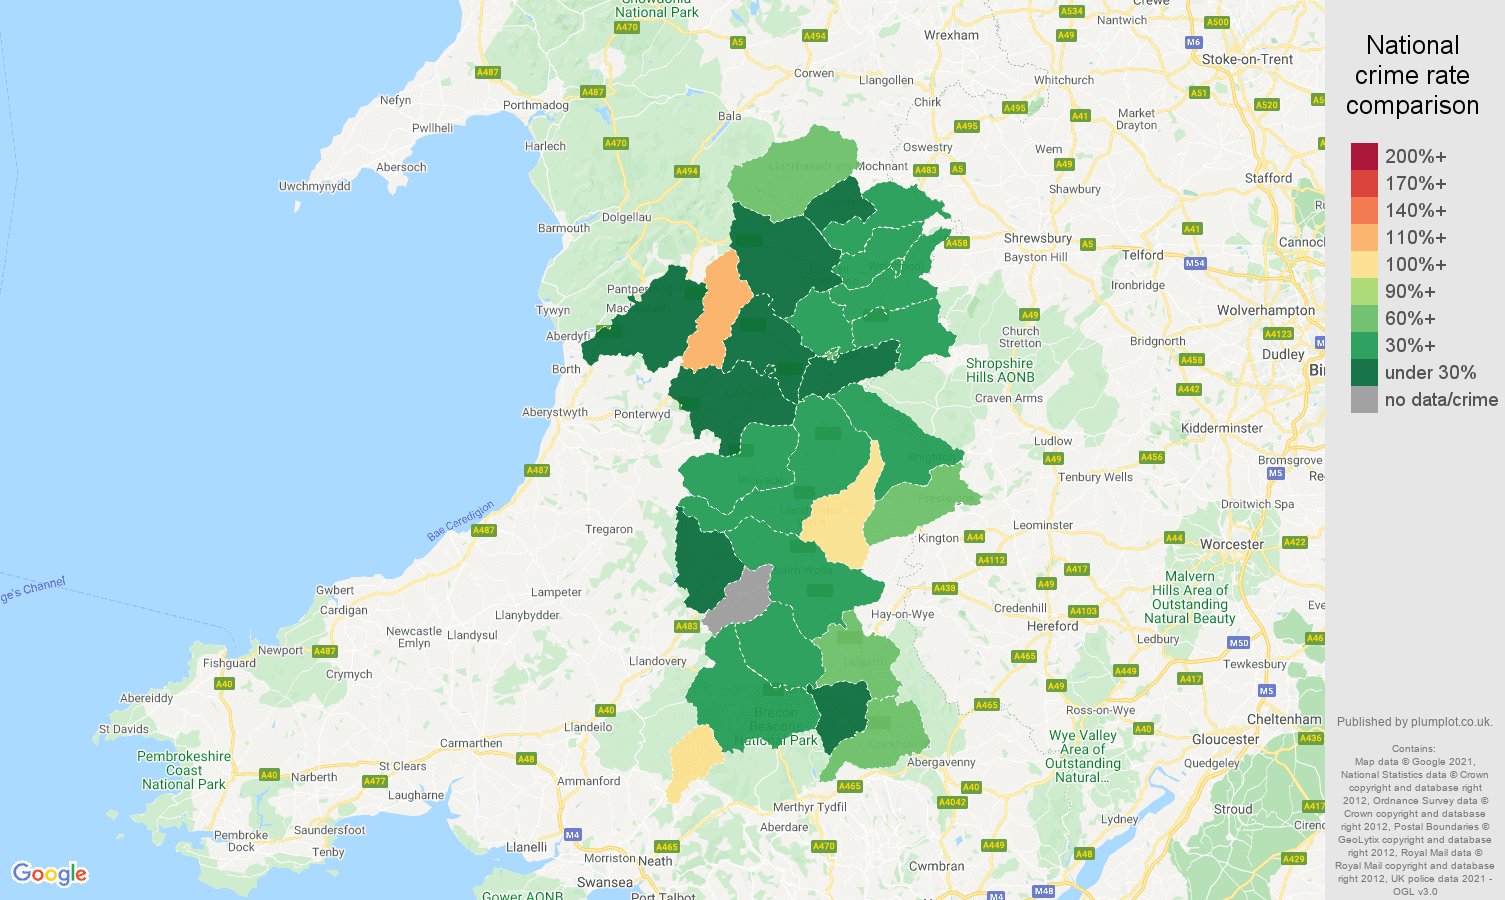 Powys burglary crime rate comparison map